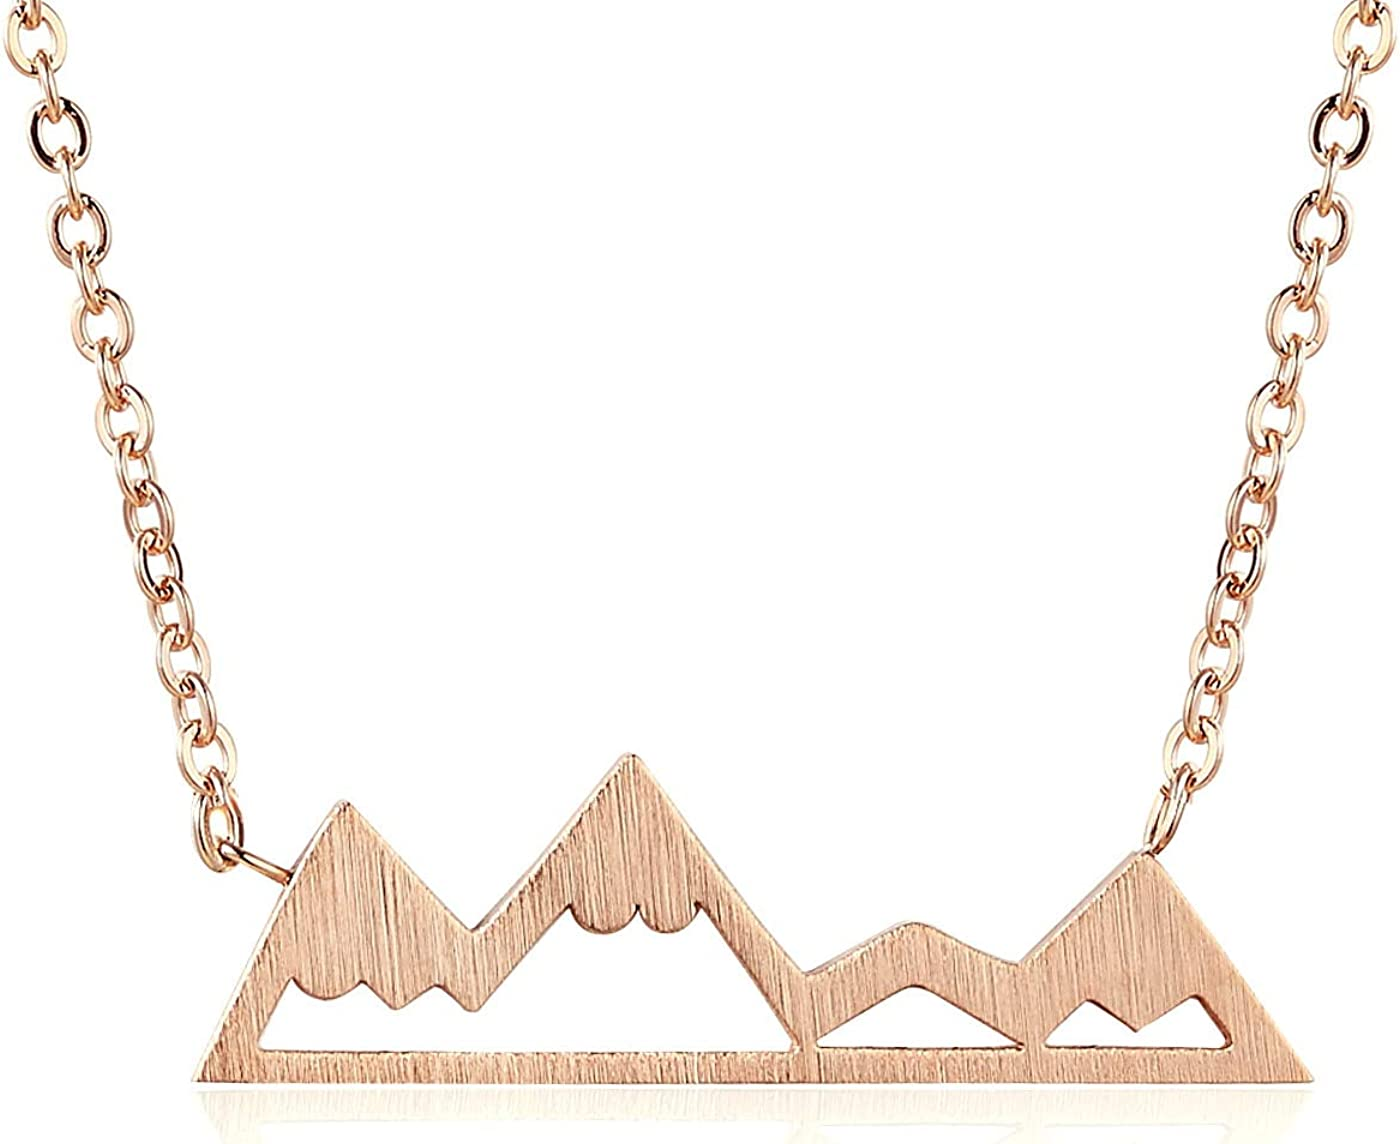 Rosa Vila Mountain Necklace For Women, Mountains And Outdoor Lovers Gifts, Mountain Range Necklace In Rose Gold, Gold, Carbon Black, Or Silver, Mountain Jewelry, Nature Necklace